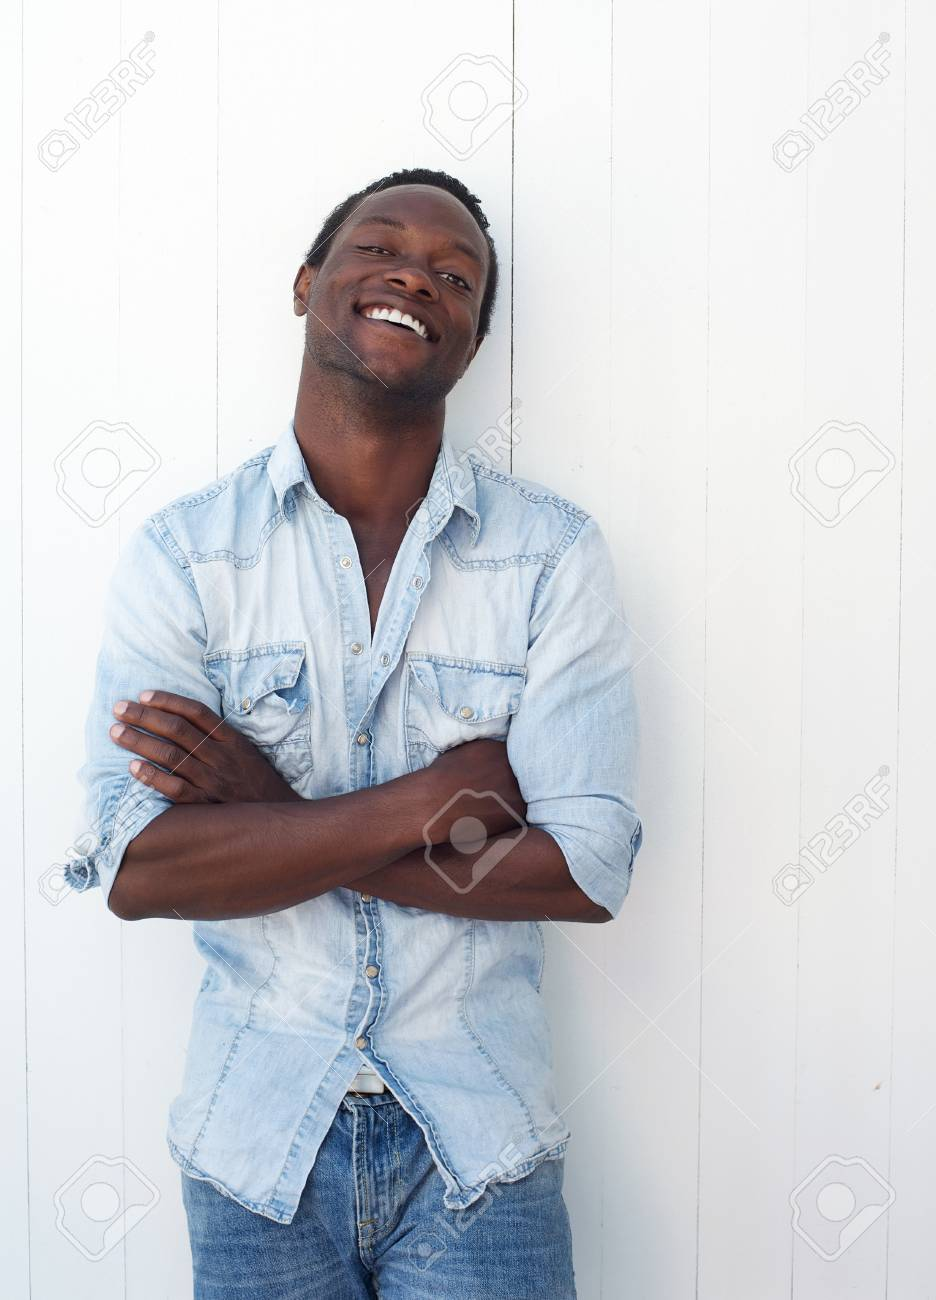 d4fb0f62c42 Closeup portrait of a happy young black man smiling outdoors against white  background Stock Photo -